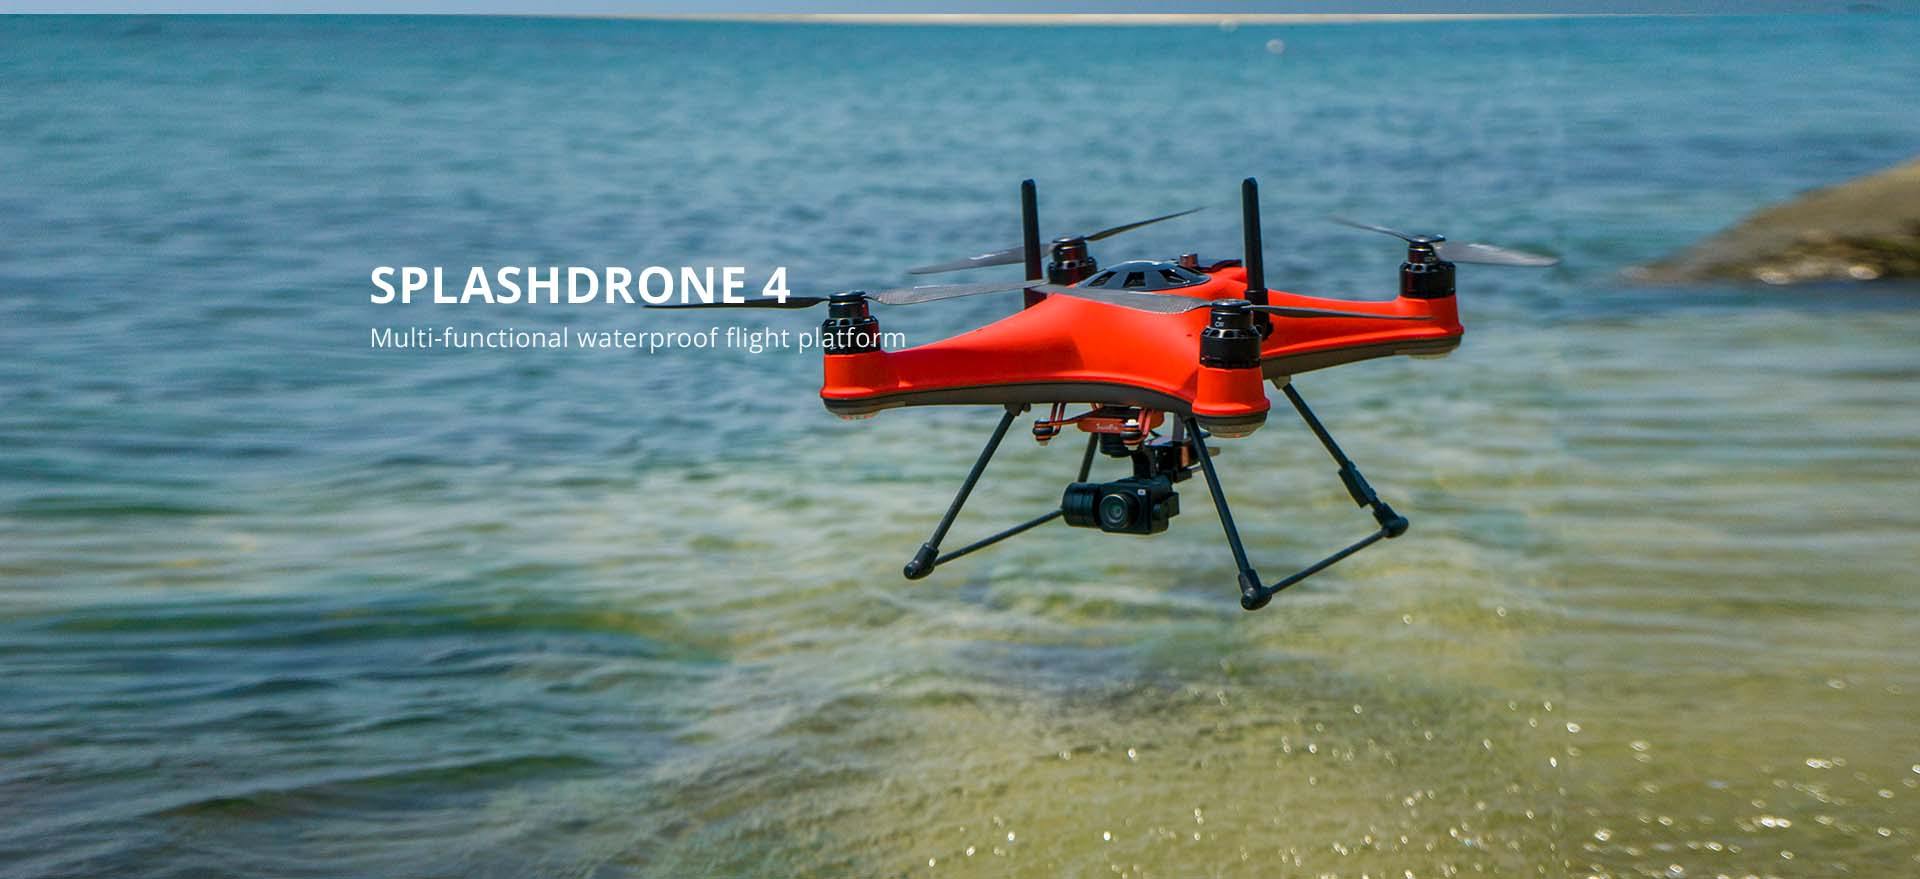 SwellPro SplashDrone 4 - Introduction to the Drone